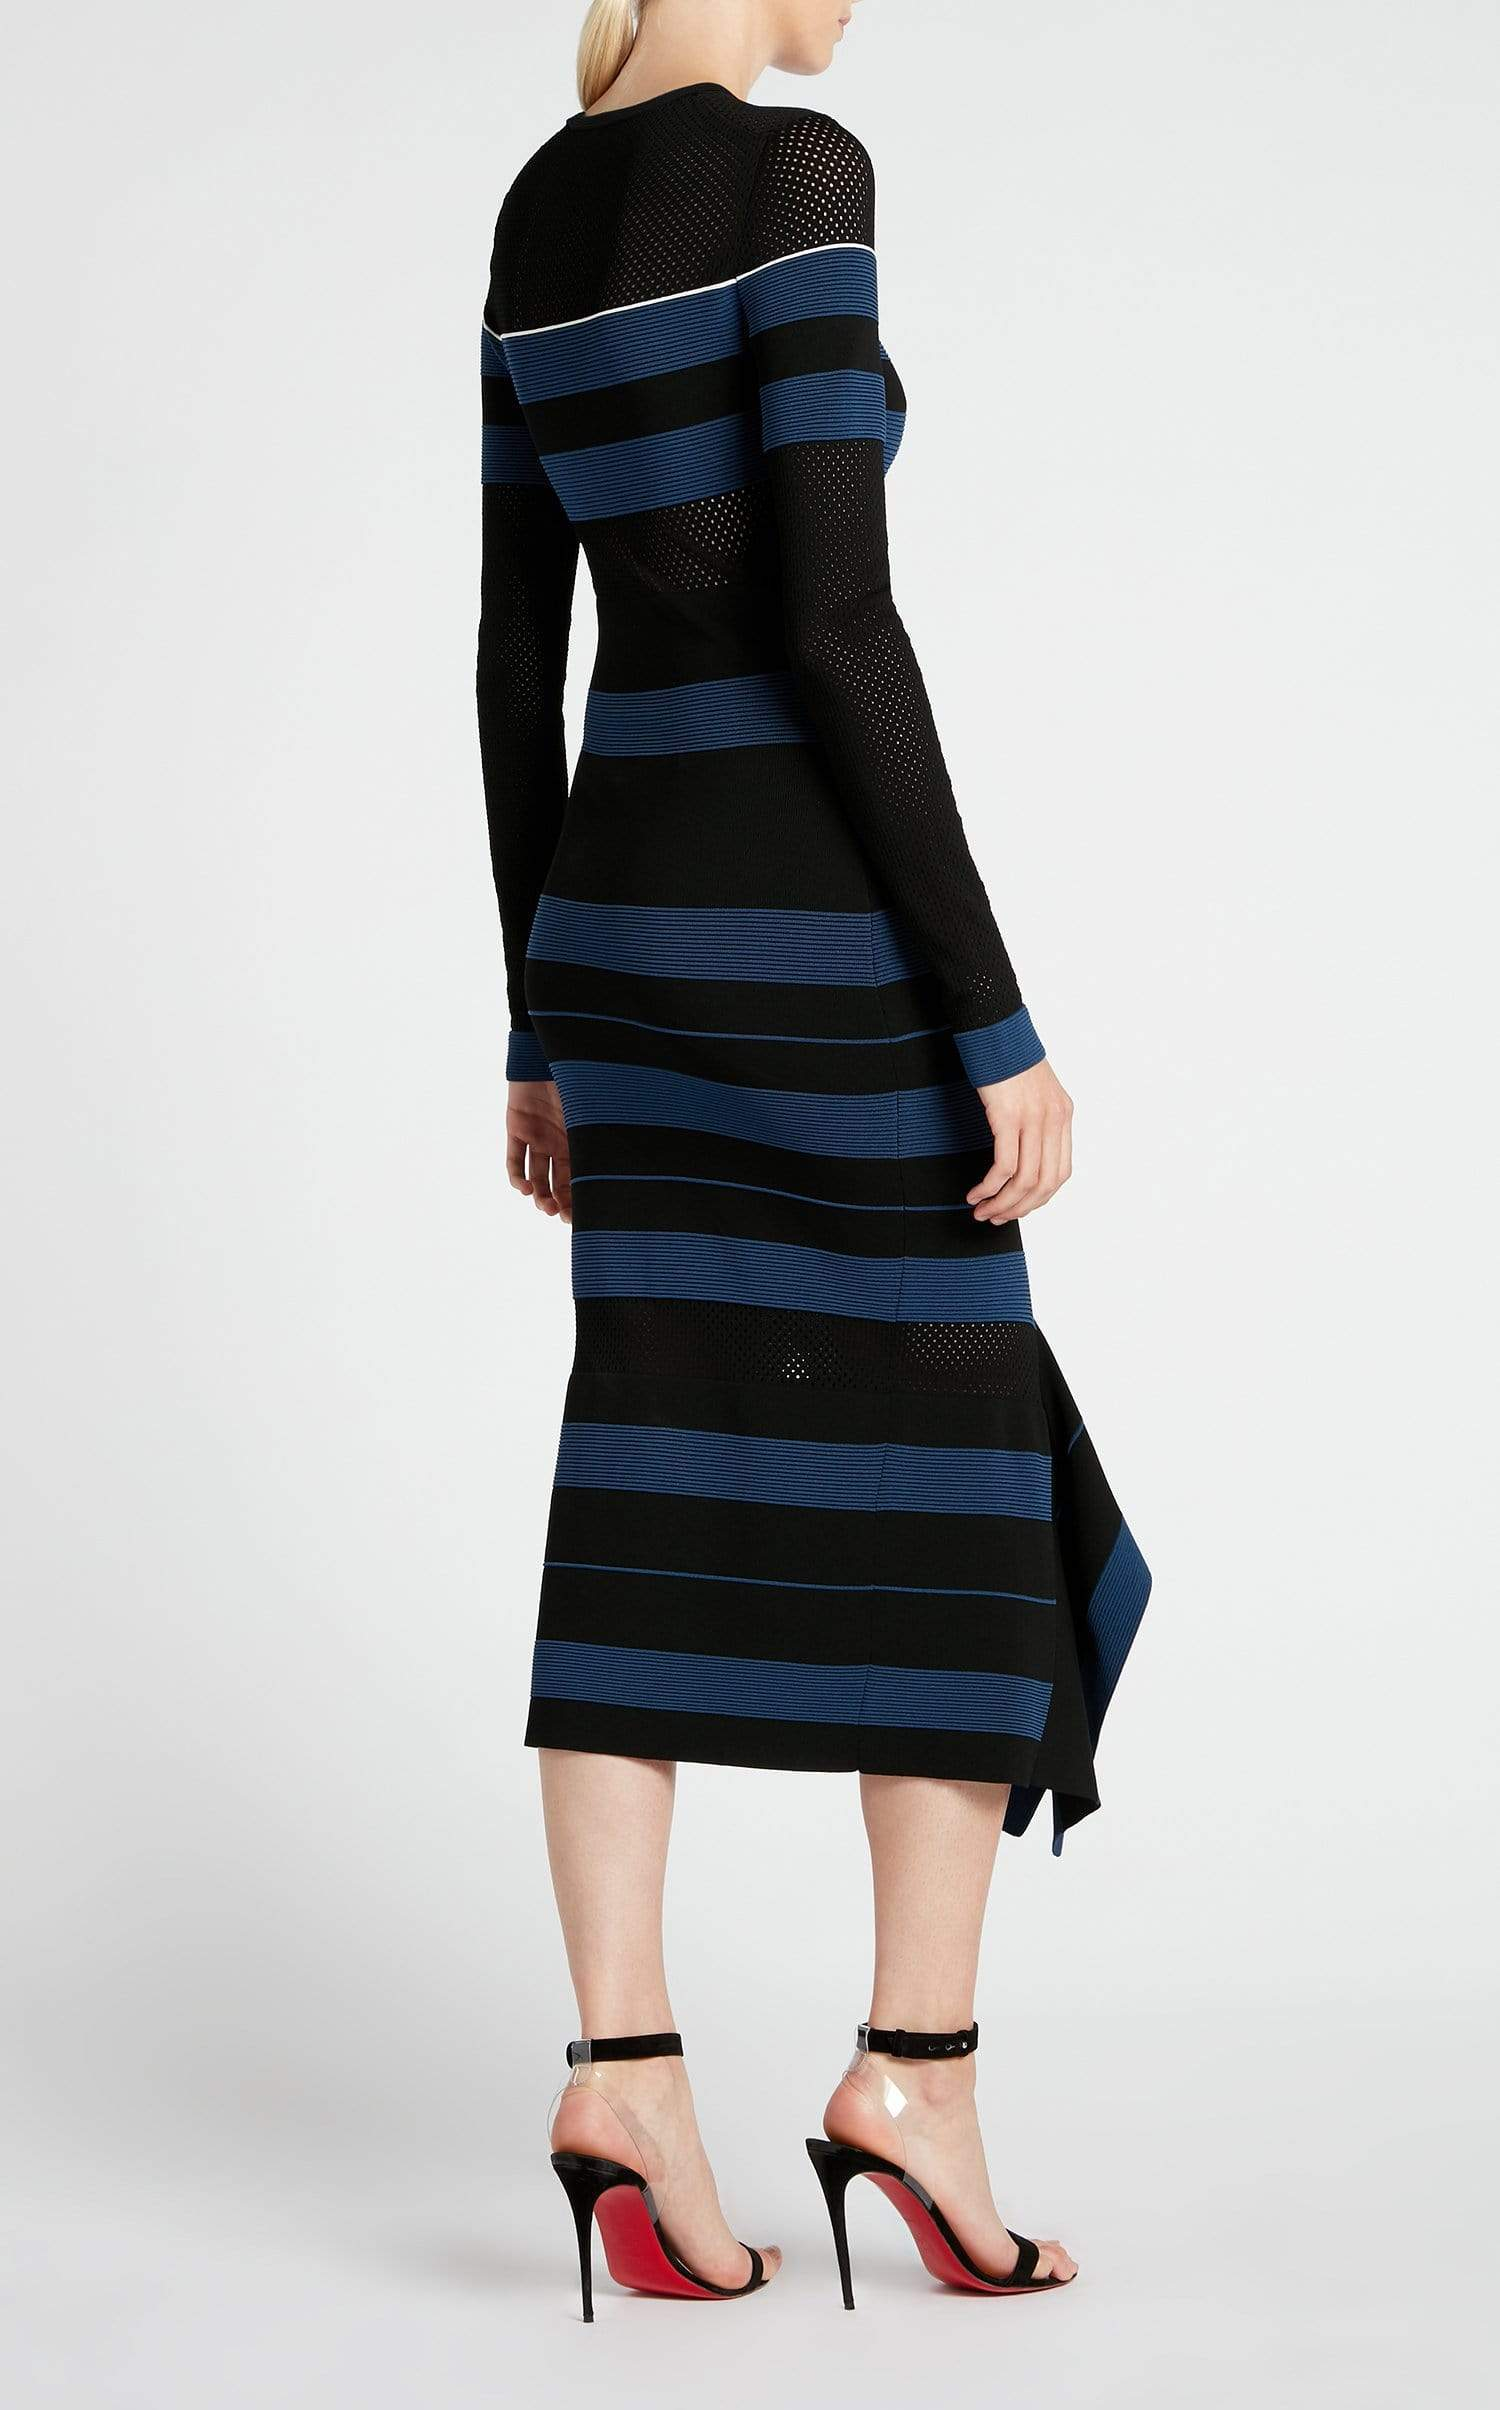 Olivier Dress In Black/Ultramarine/White from Roland Mouret